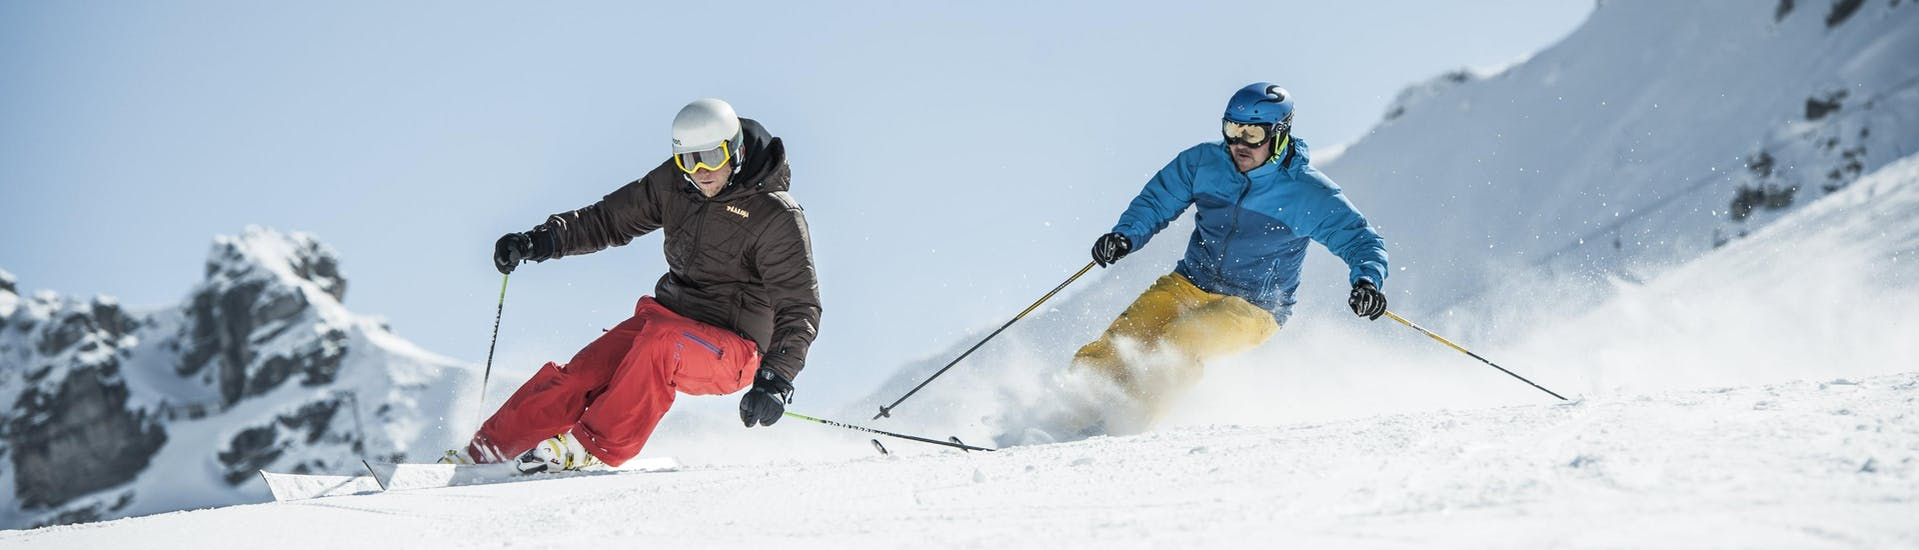 A skier practices the correct skiing technique during one of the private ski lessons in Notre-Dame-de-Bellecombe.